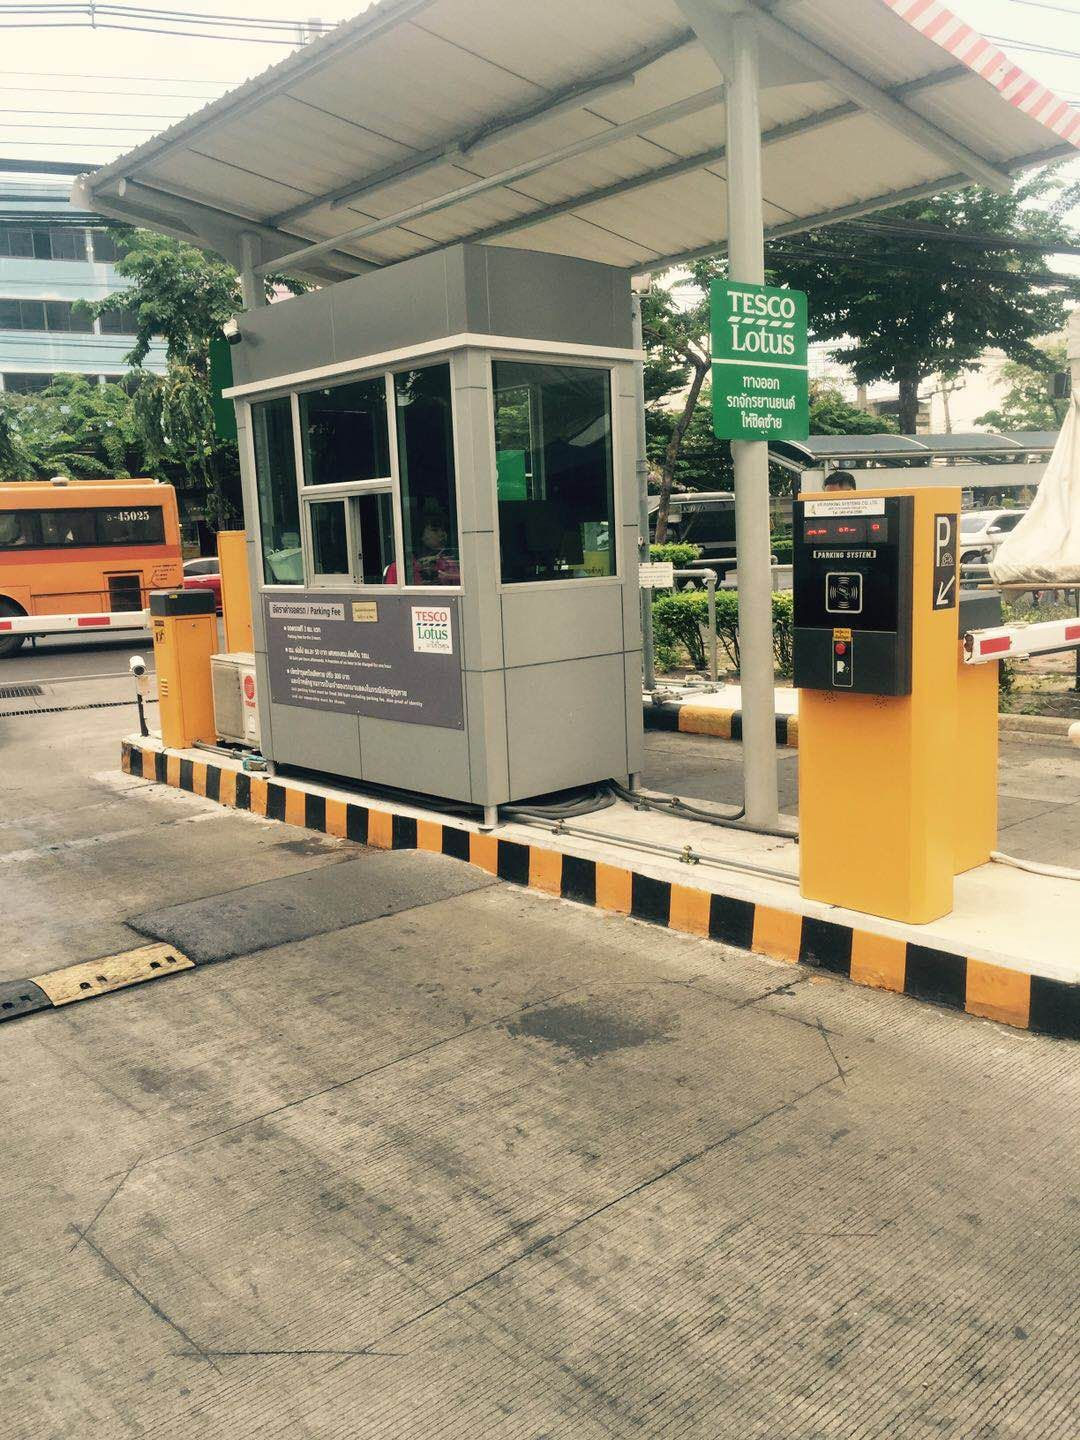 Tenet parking management system in Thailand